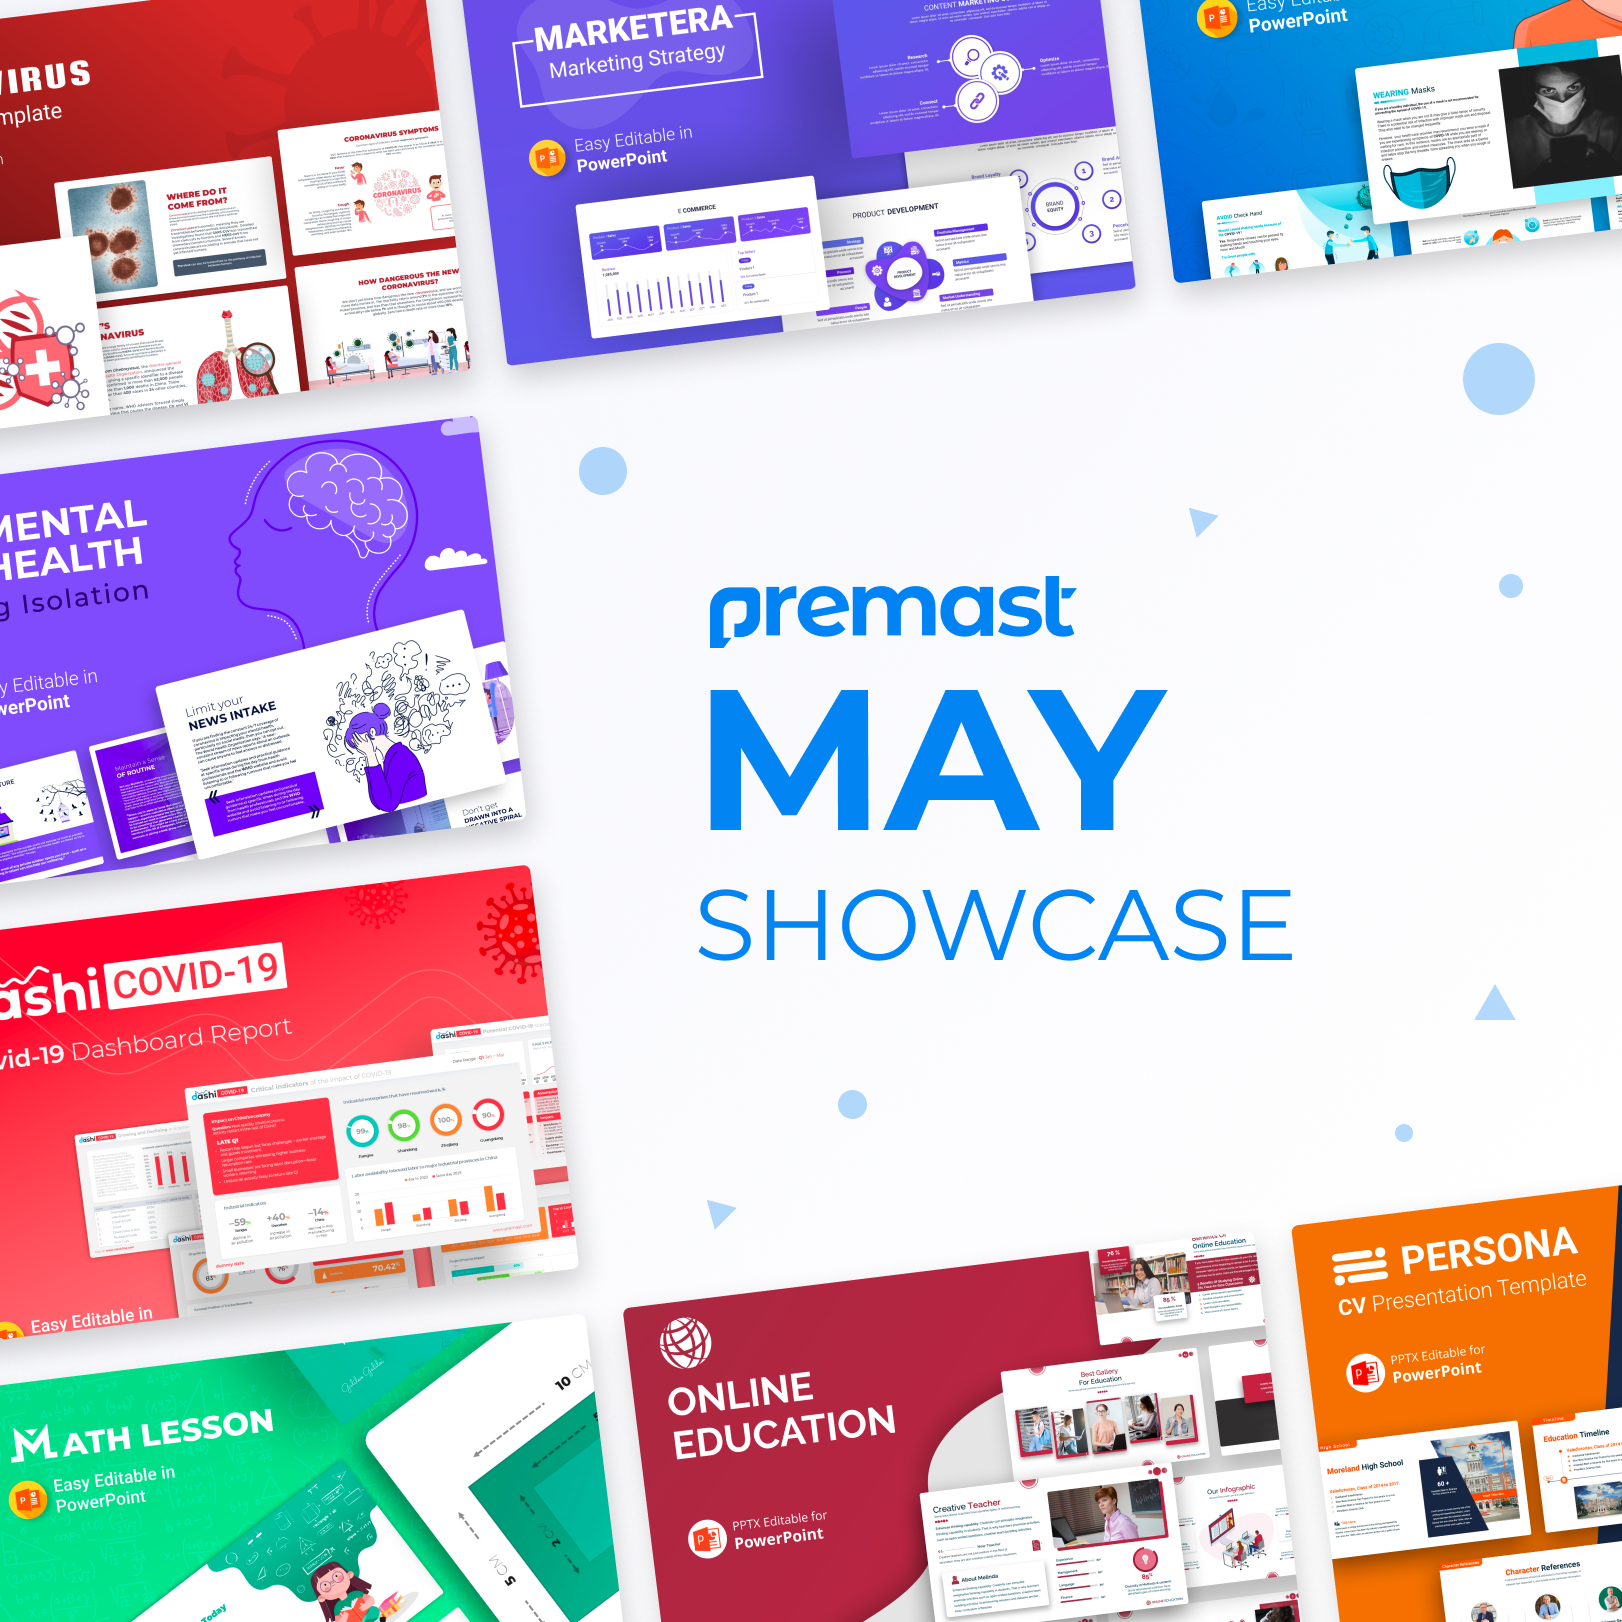 May Showcase: Recently Added, Top Presentation and More